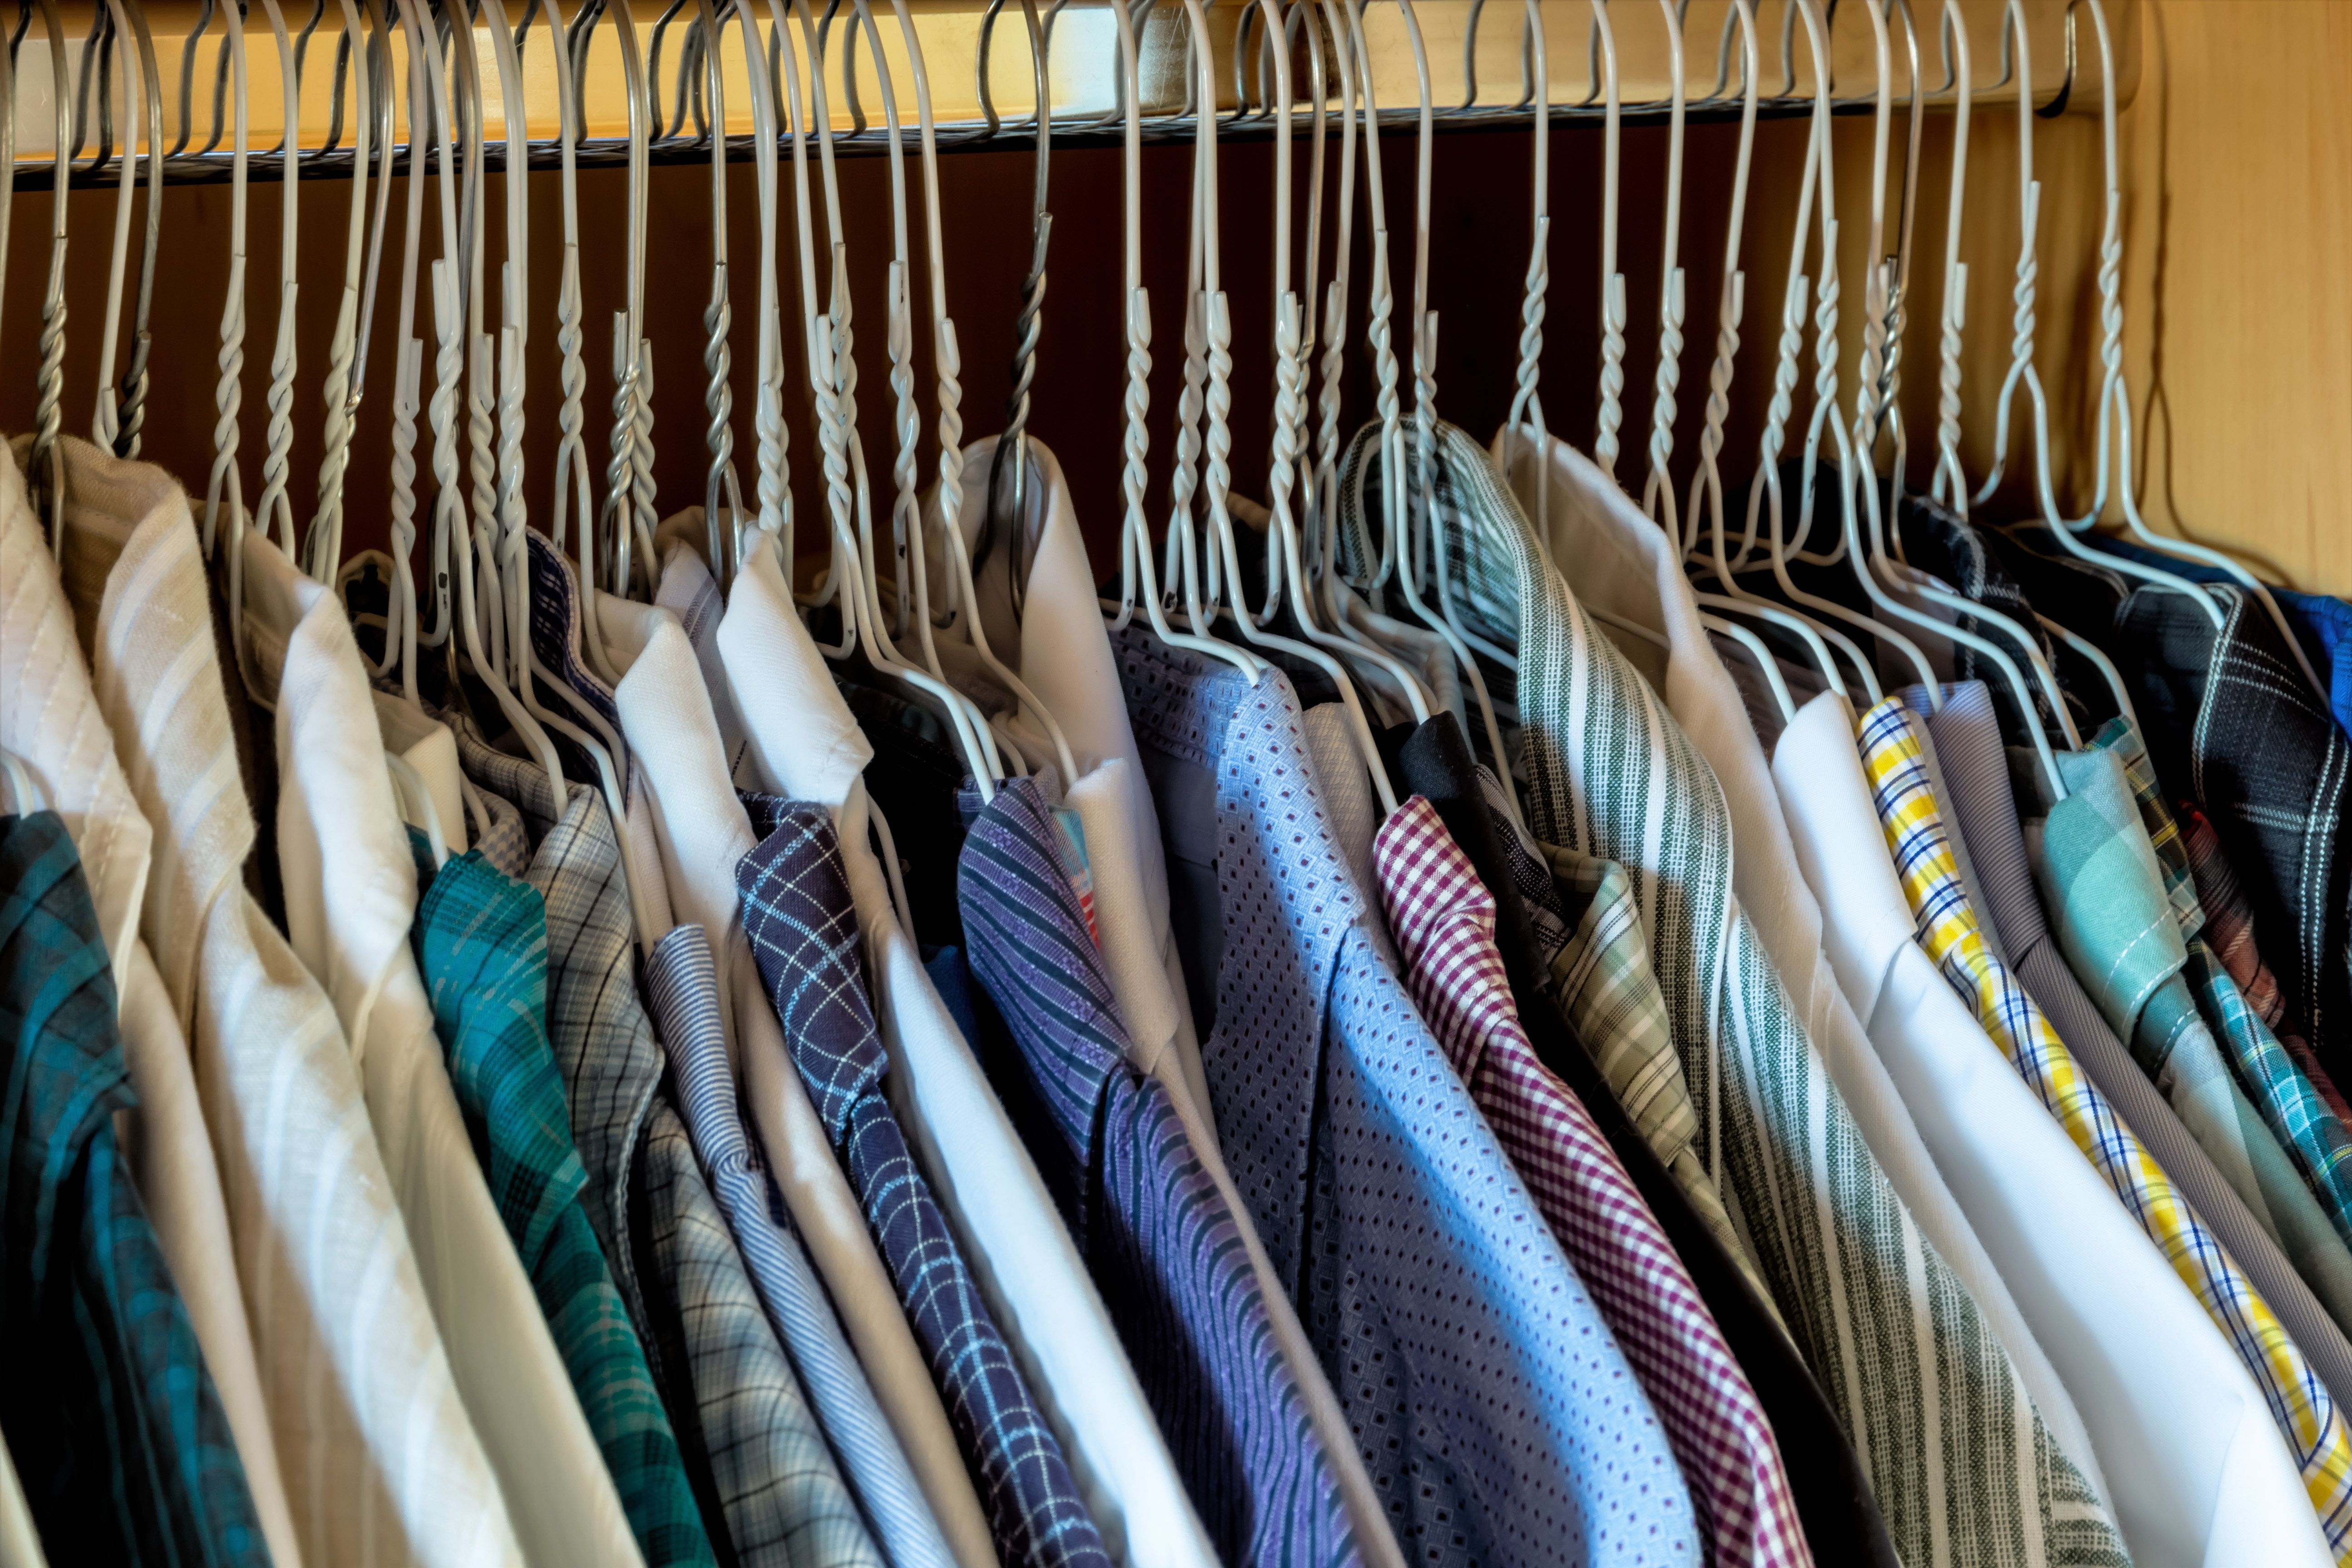 bedroom box with men's shirts on hangers, selection and order